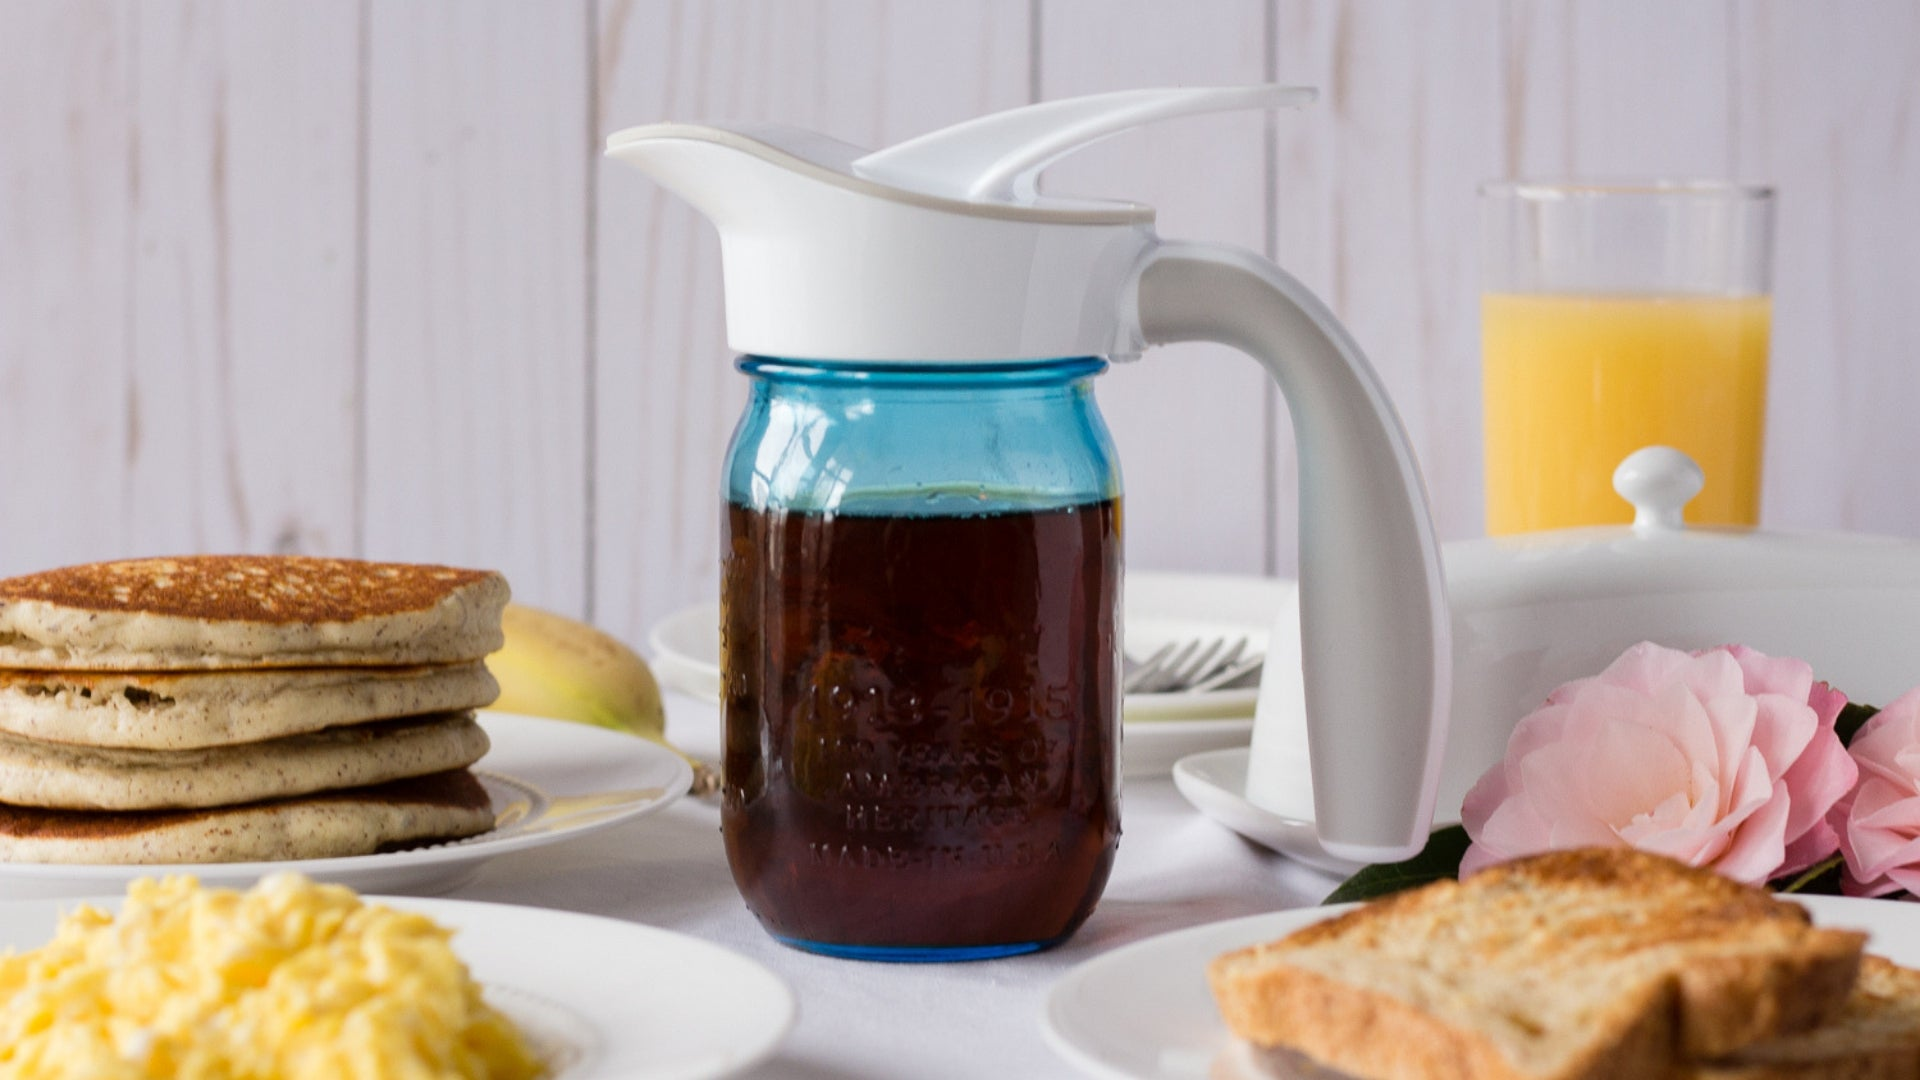 Ergo Spout™: Mason Jar spout and handle with breakfast foods